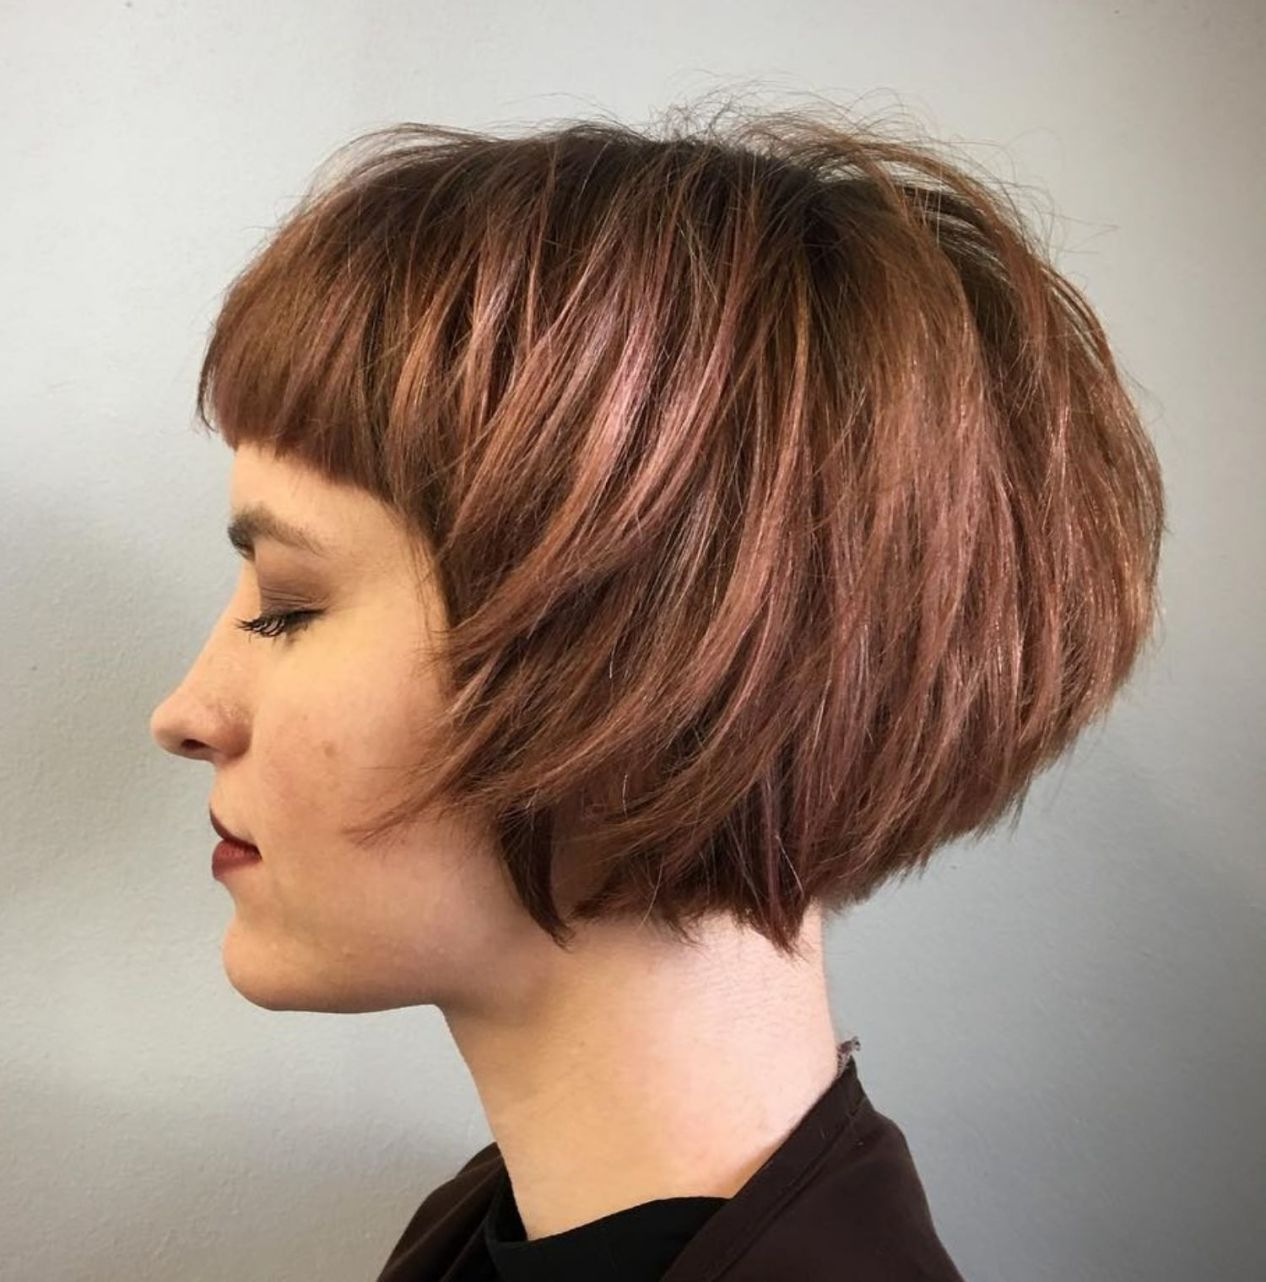 60 Best Short Bob Haircuts and Hairstyles for Women | Thick hair styles,  Hair styles, Short bob haircuts